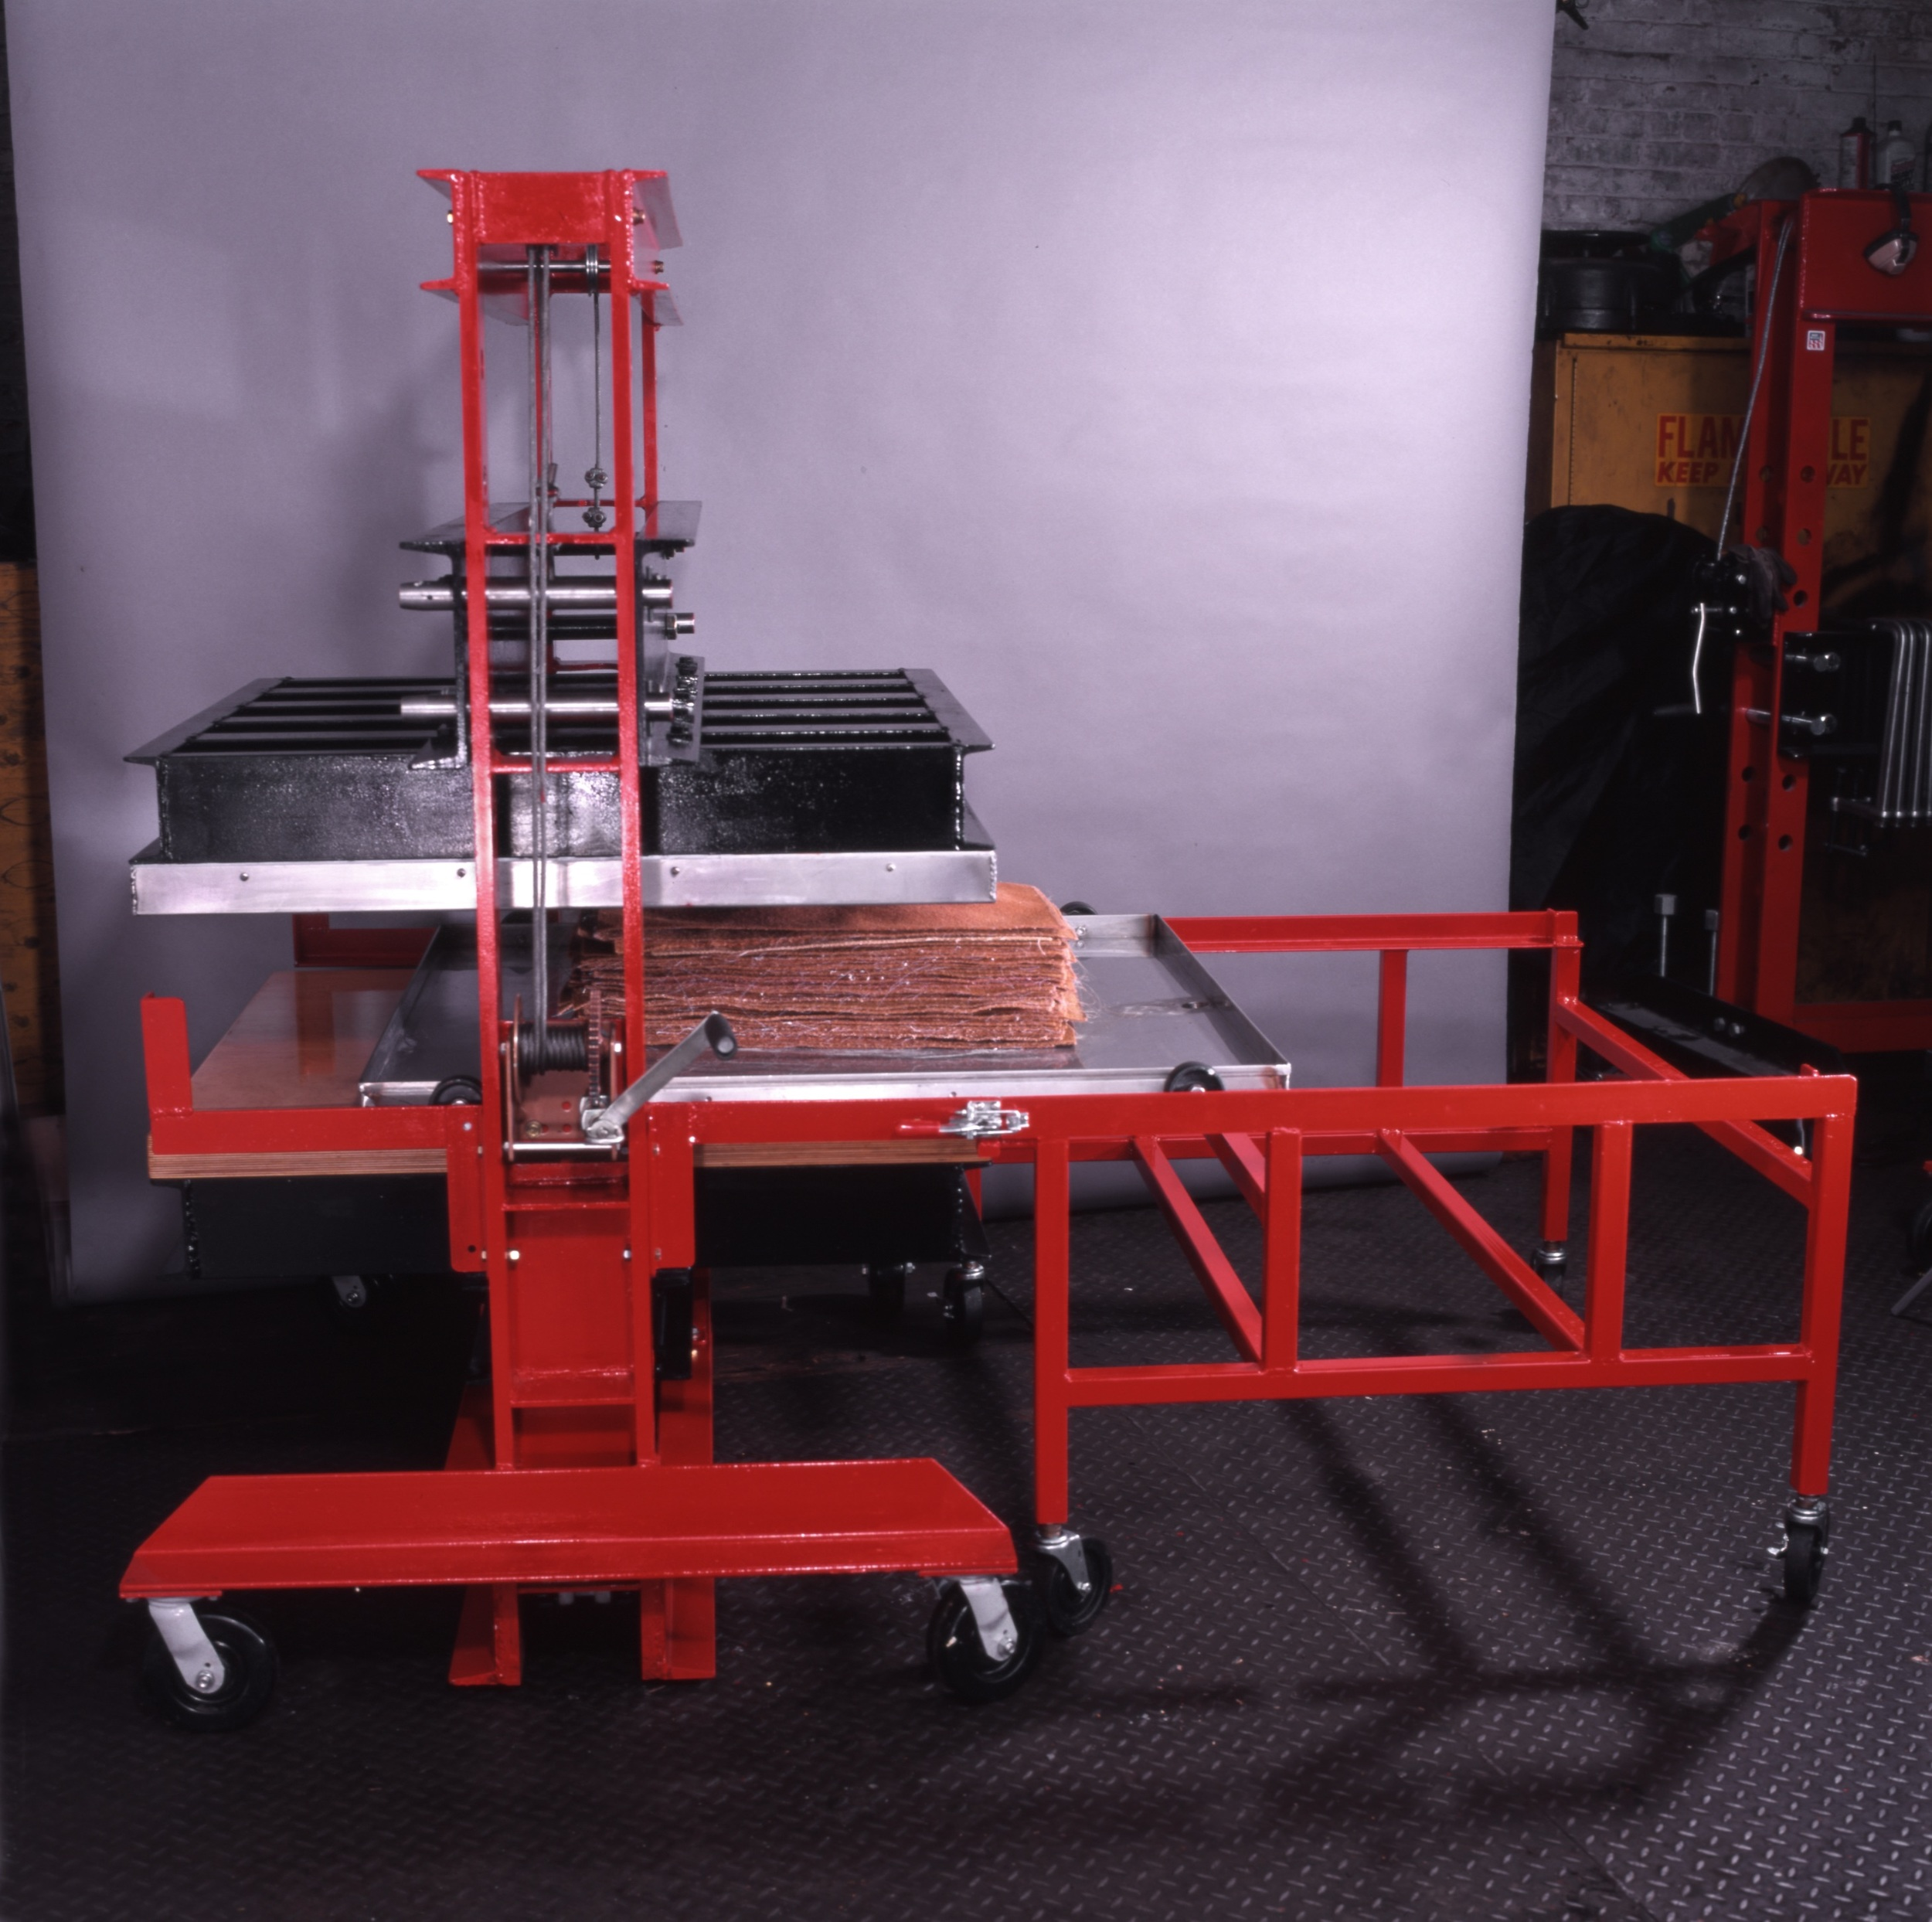 50-ton hydraulic press and rolling cart